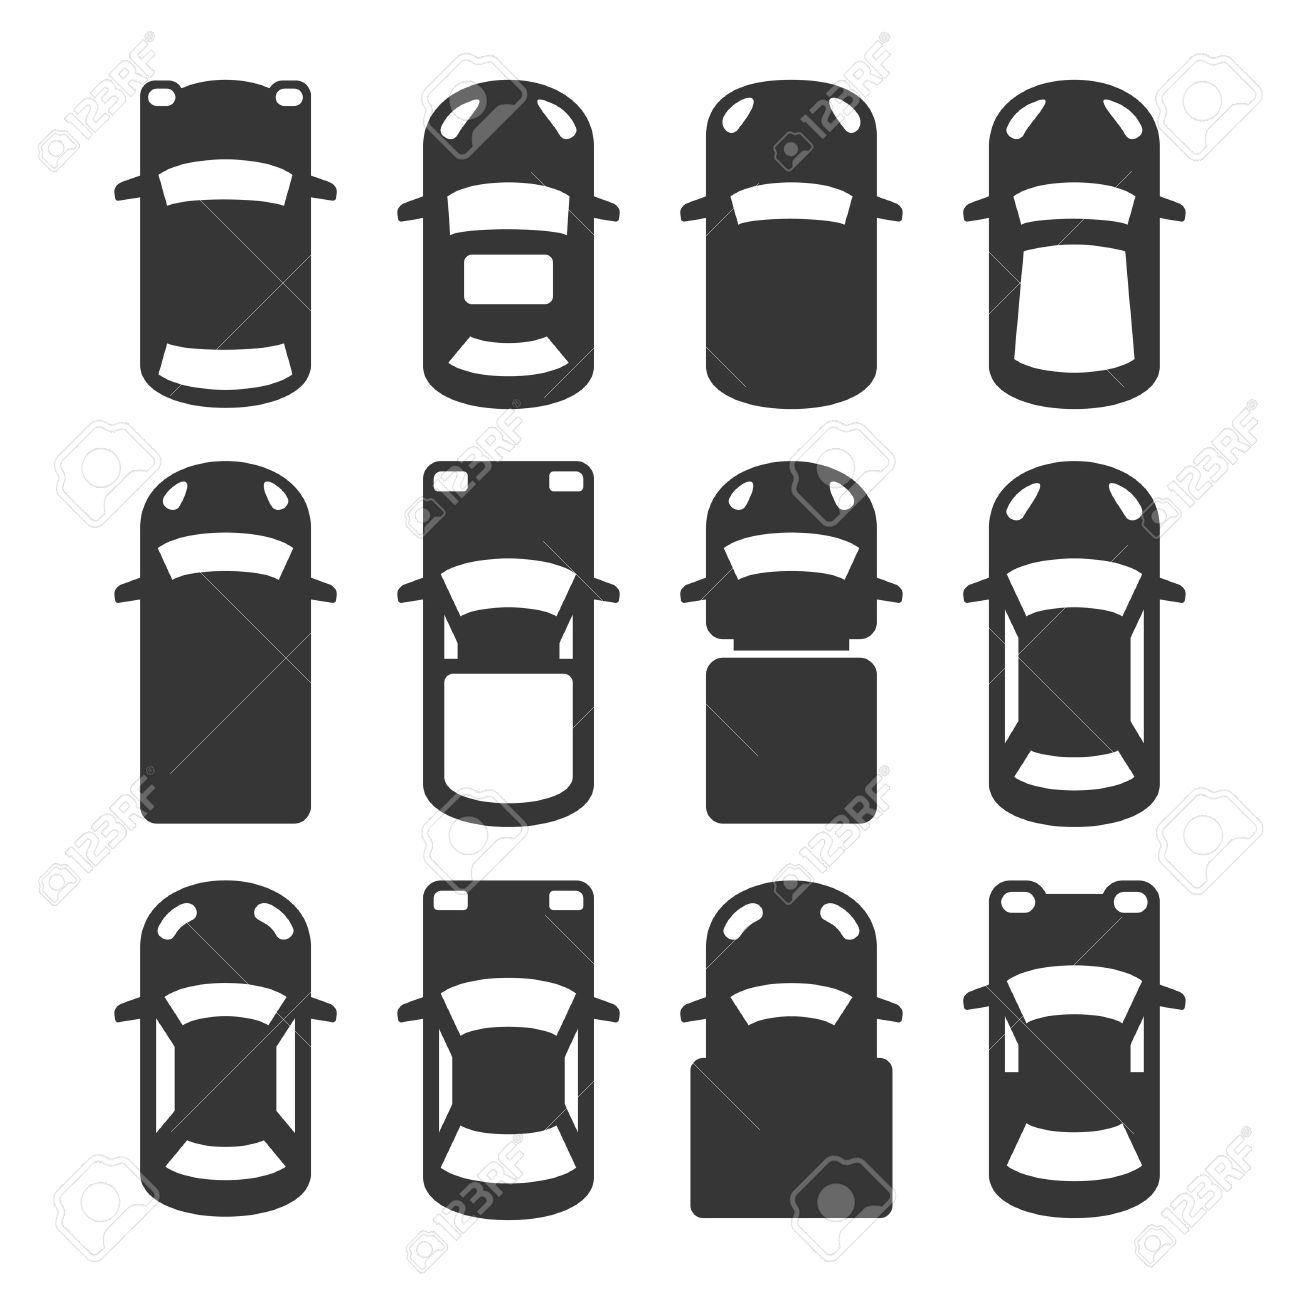 Car Top View Icons Set Vector Illustration Royalty Free Cliparts